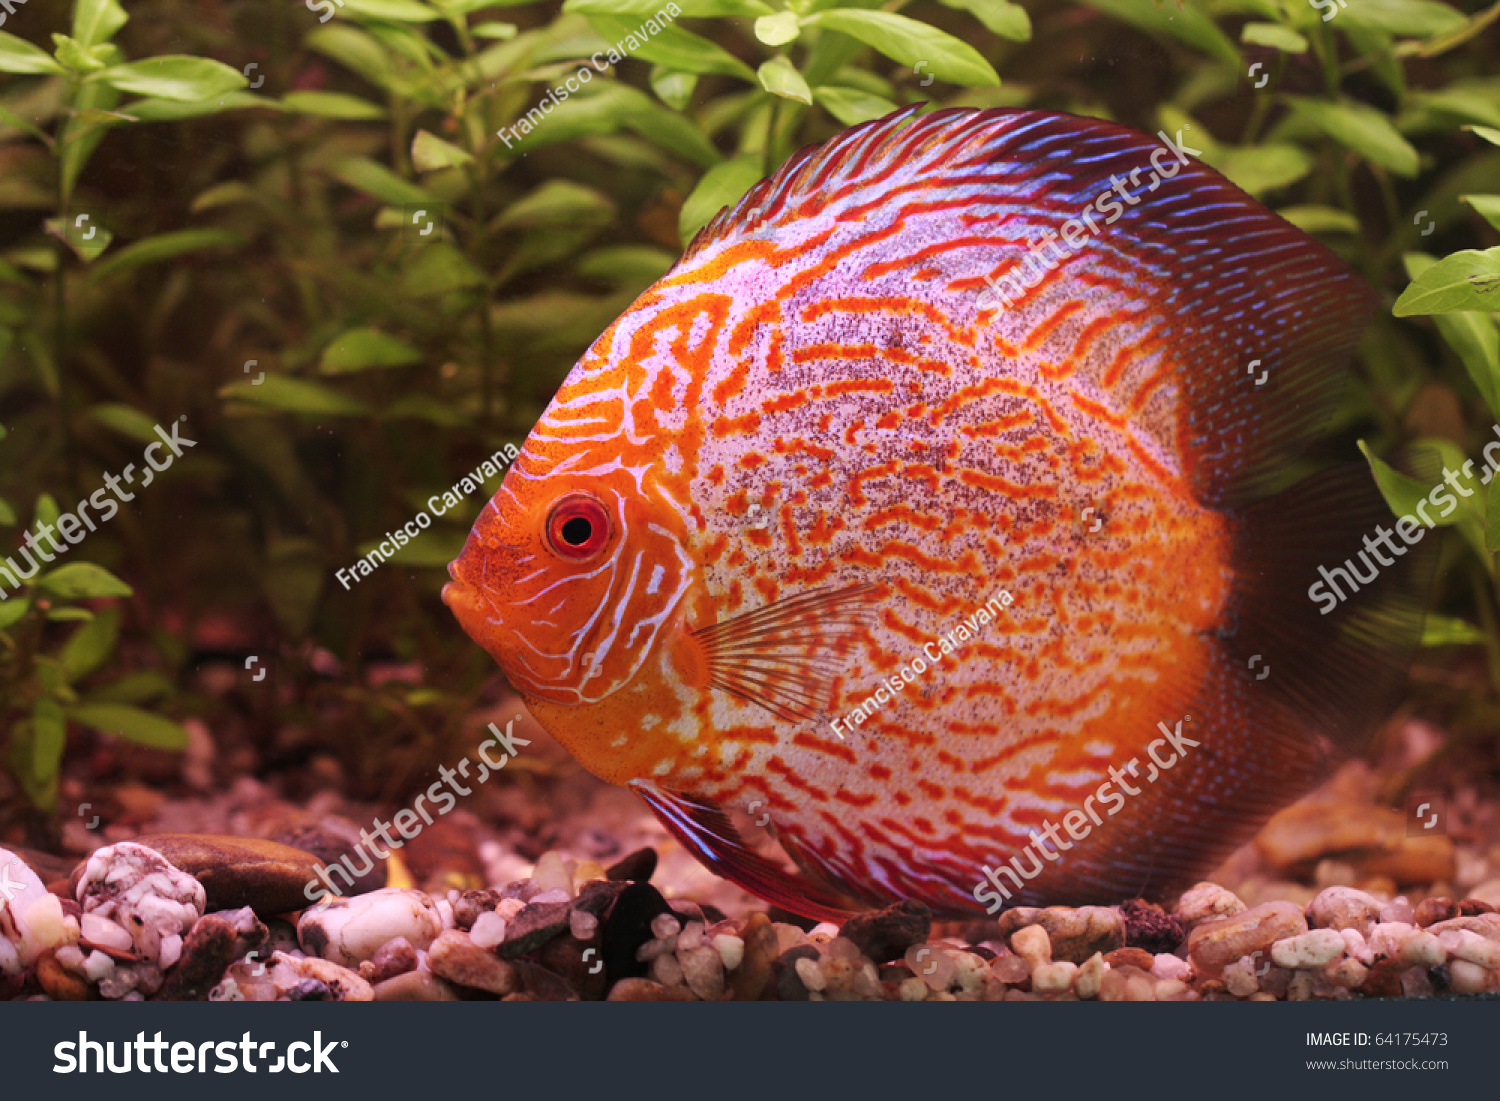 Closeup Colorful Tropical Discus Fish Stock Photo (Royalty Free ...